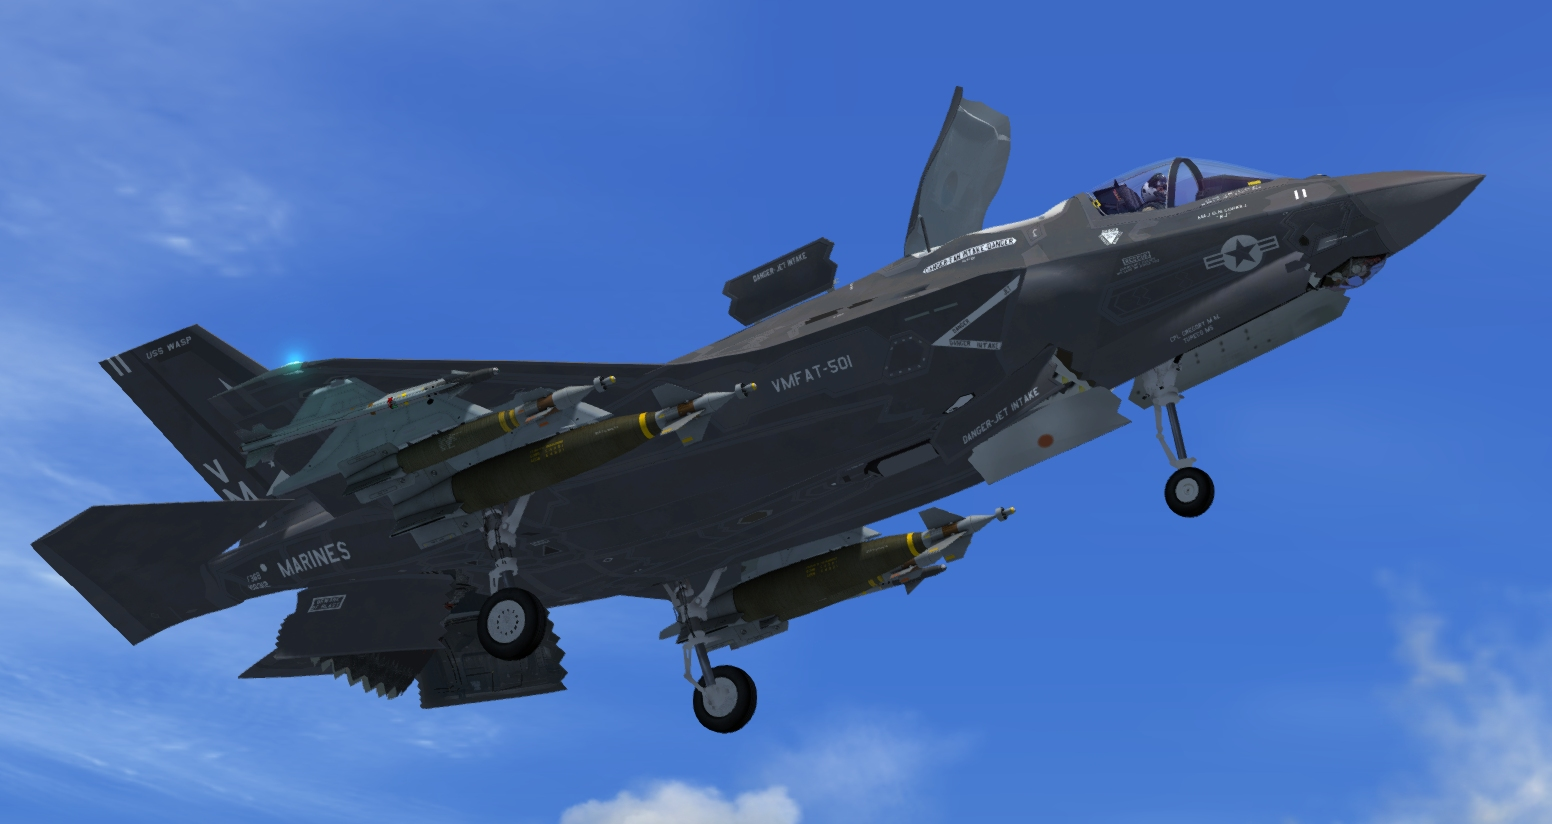 Eurofighter typhoon v2 fsx torrent | INDIAFOXTECHO